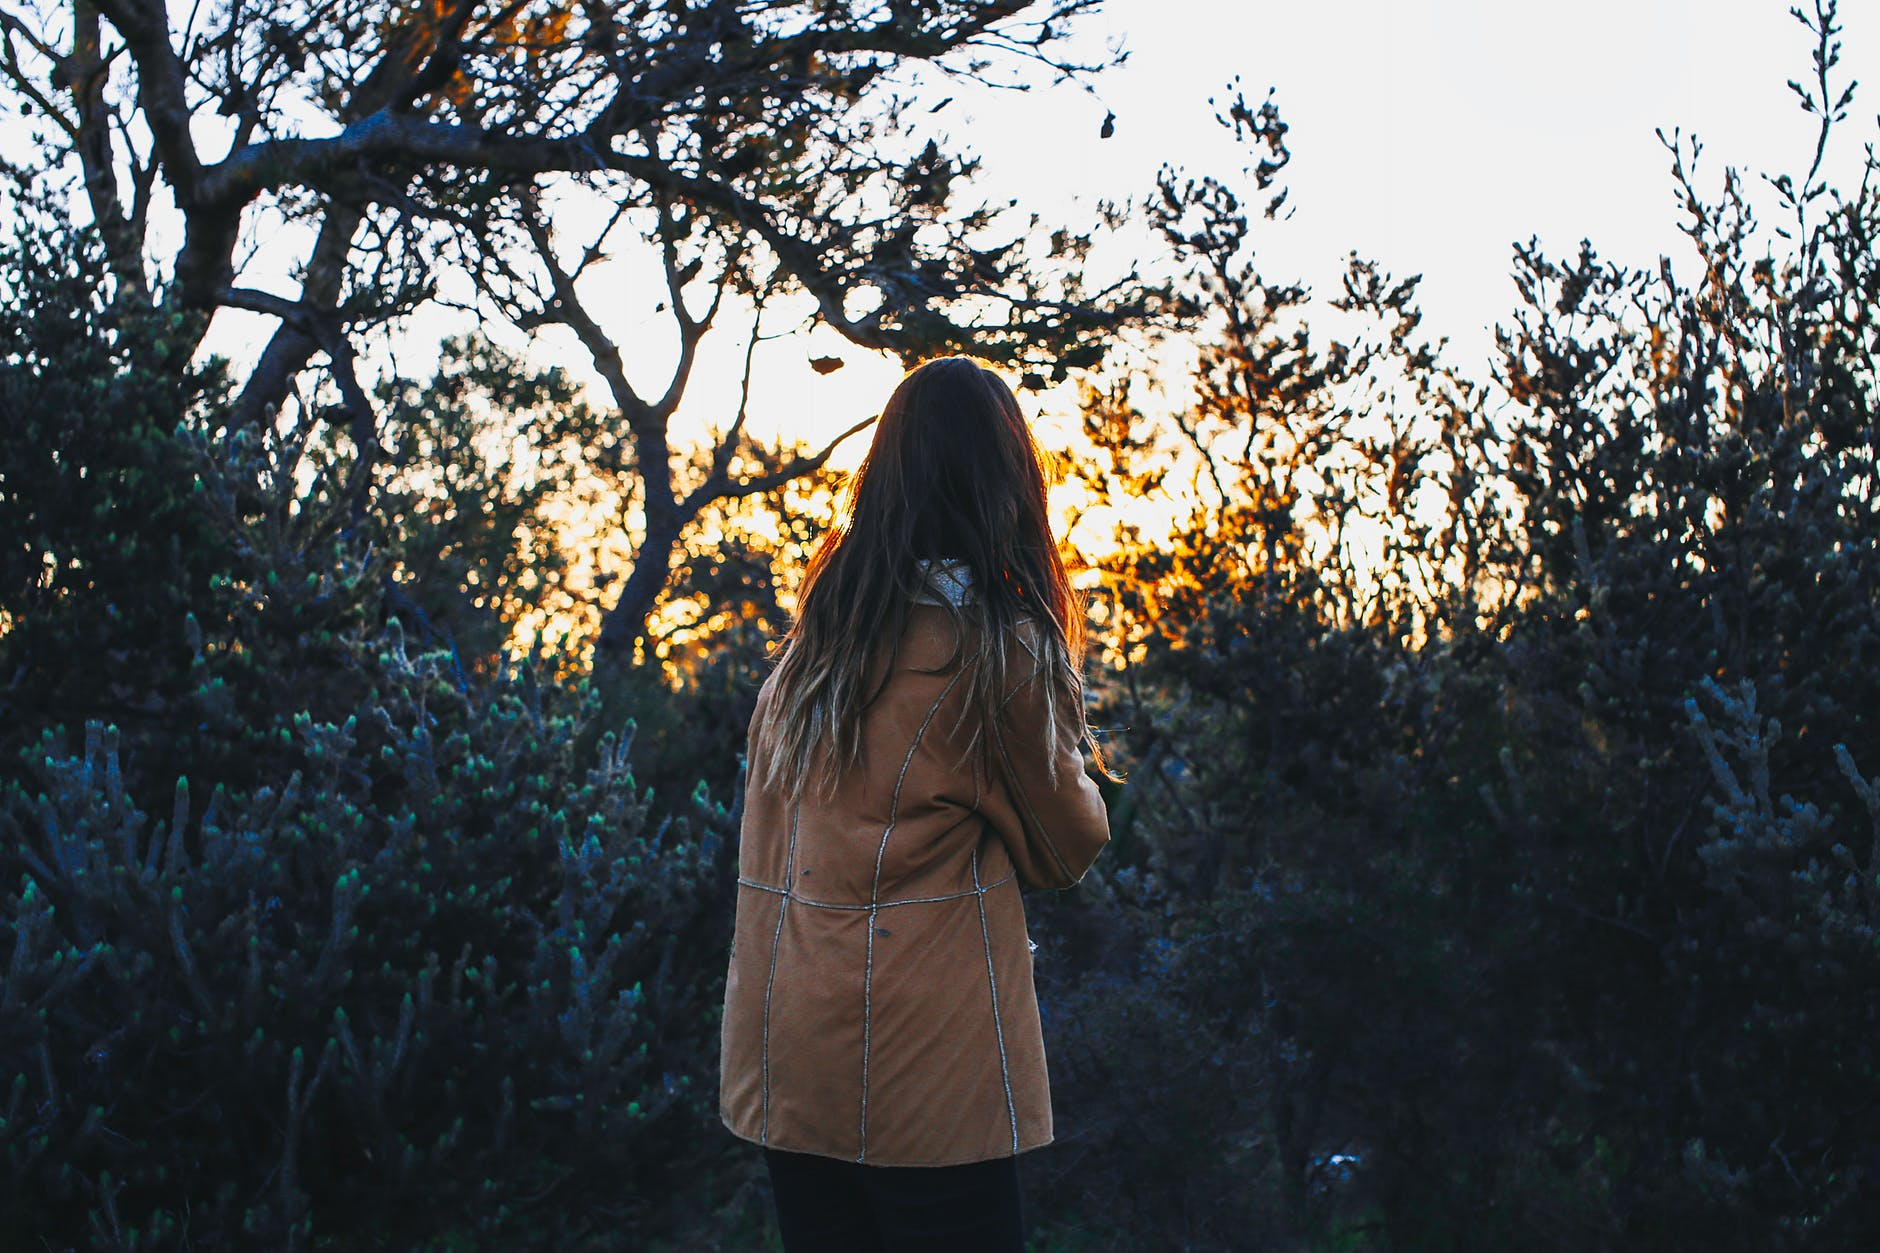 anonymous lady admiring nature in forest at sundown